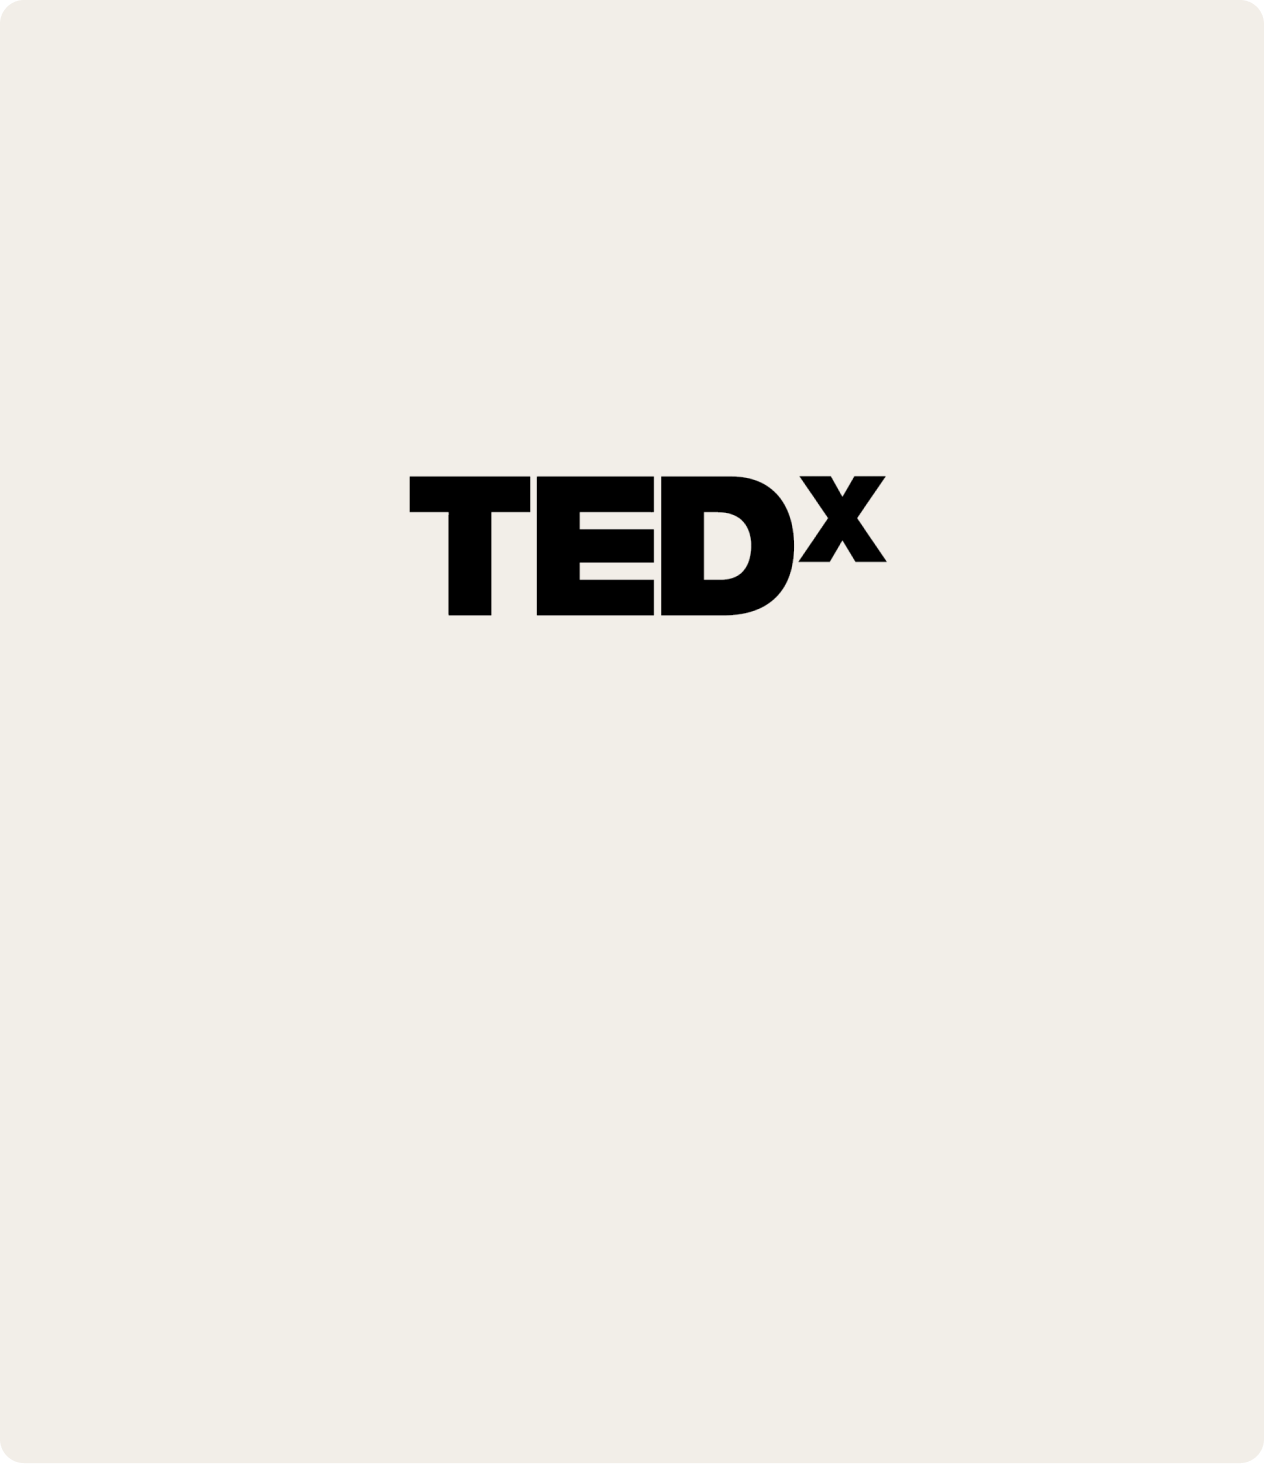 ted-background